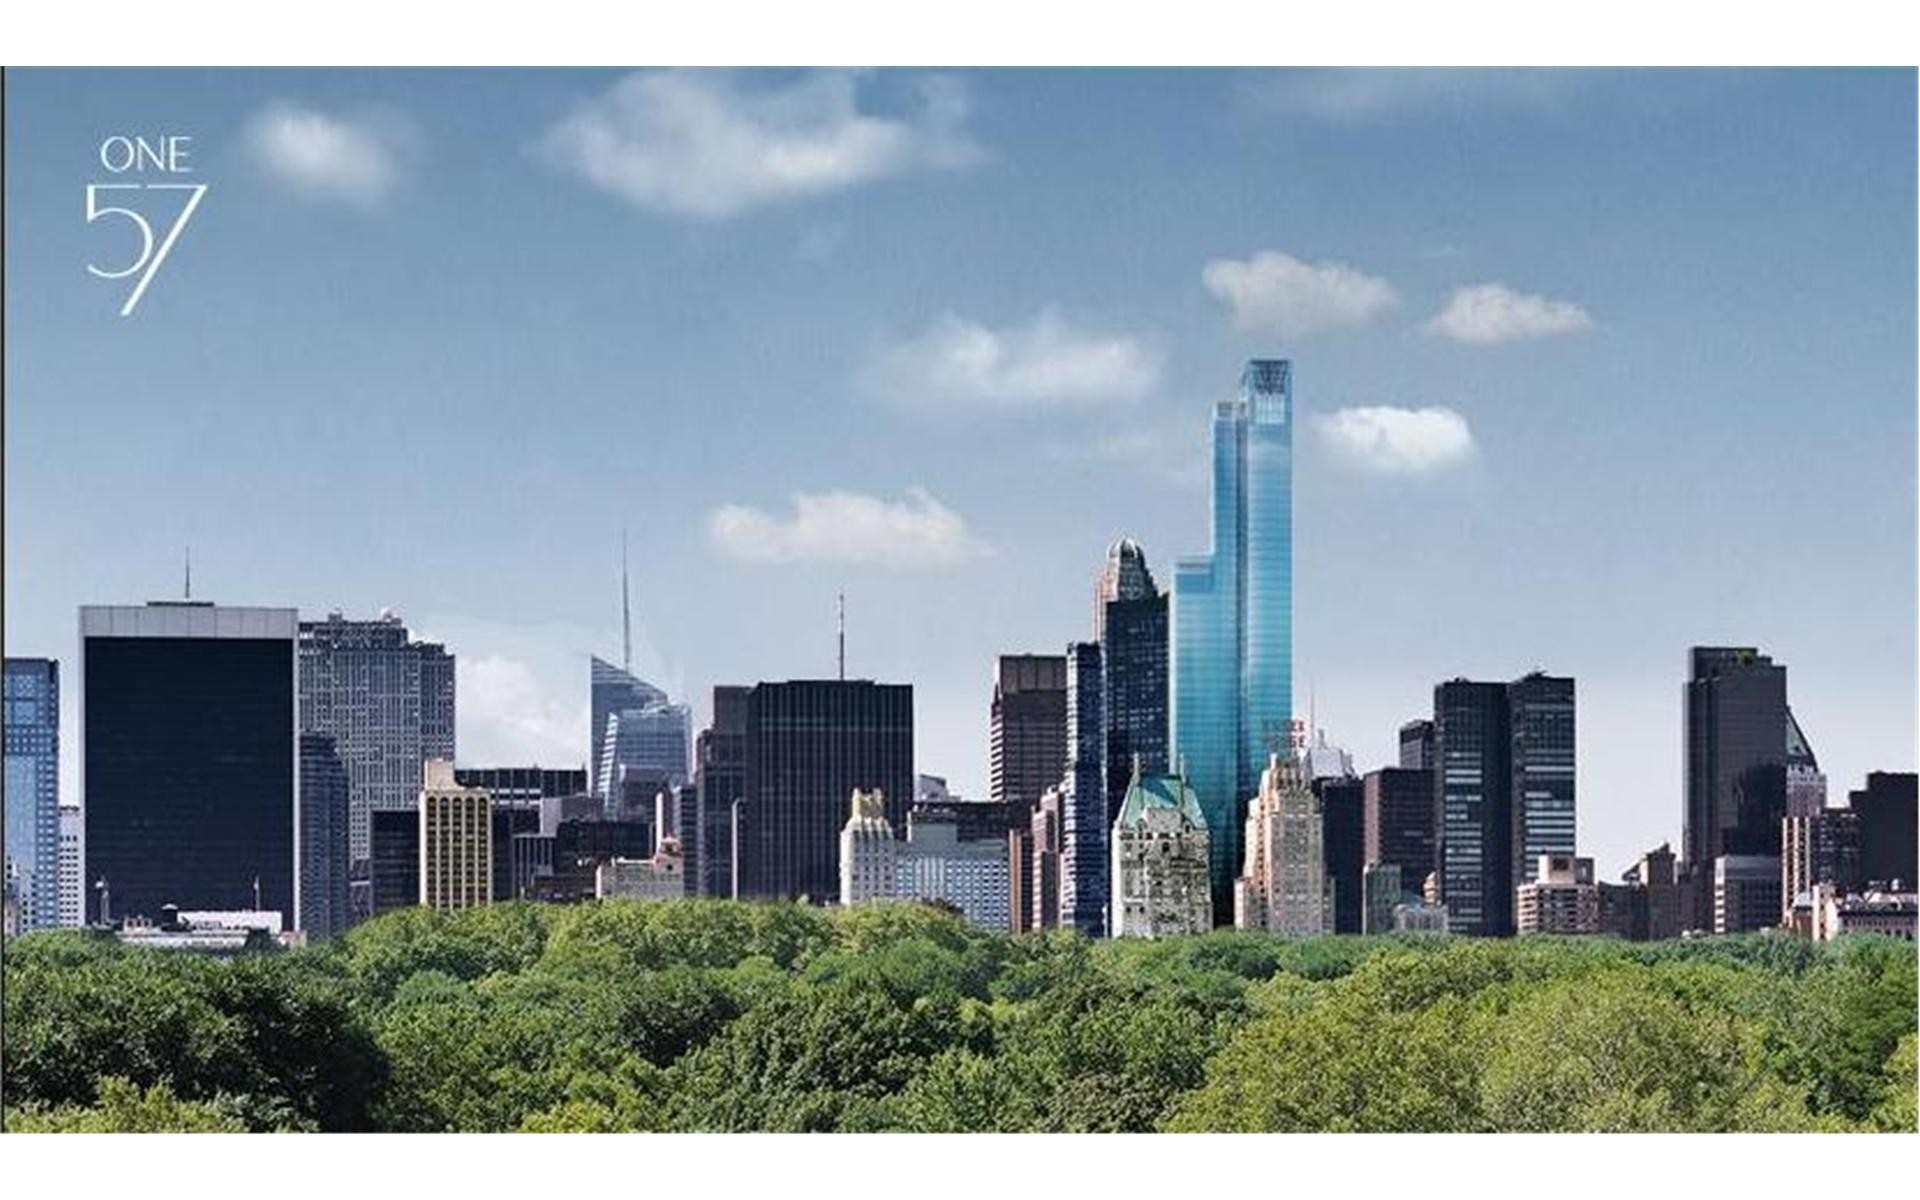 5. Condominiums for Sale at One57, 157 W 57TH ST , 41A Midtown West, New York, NY 10019